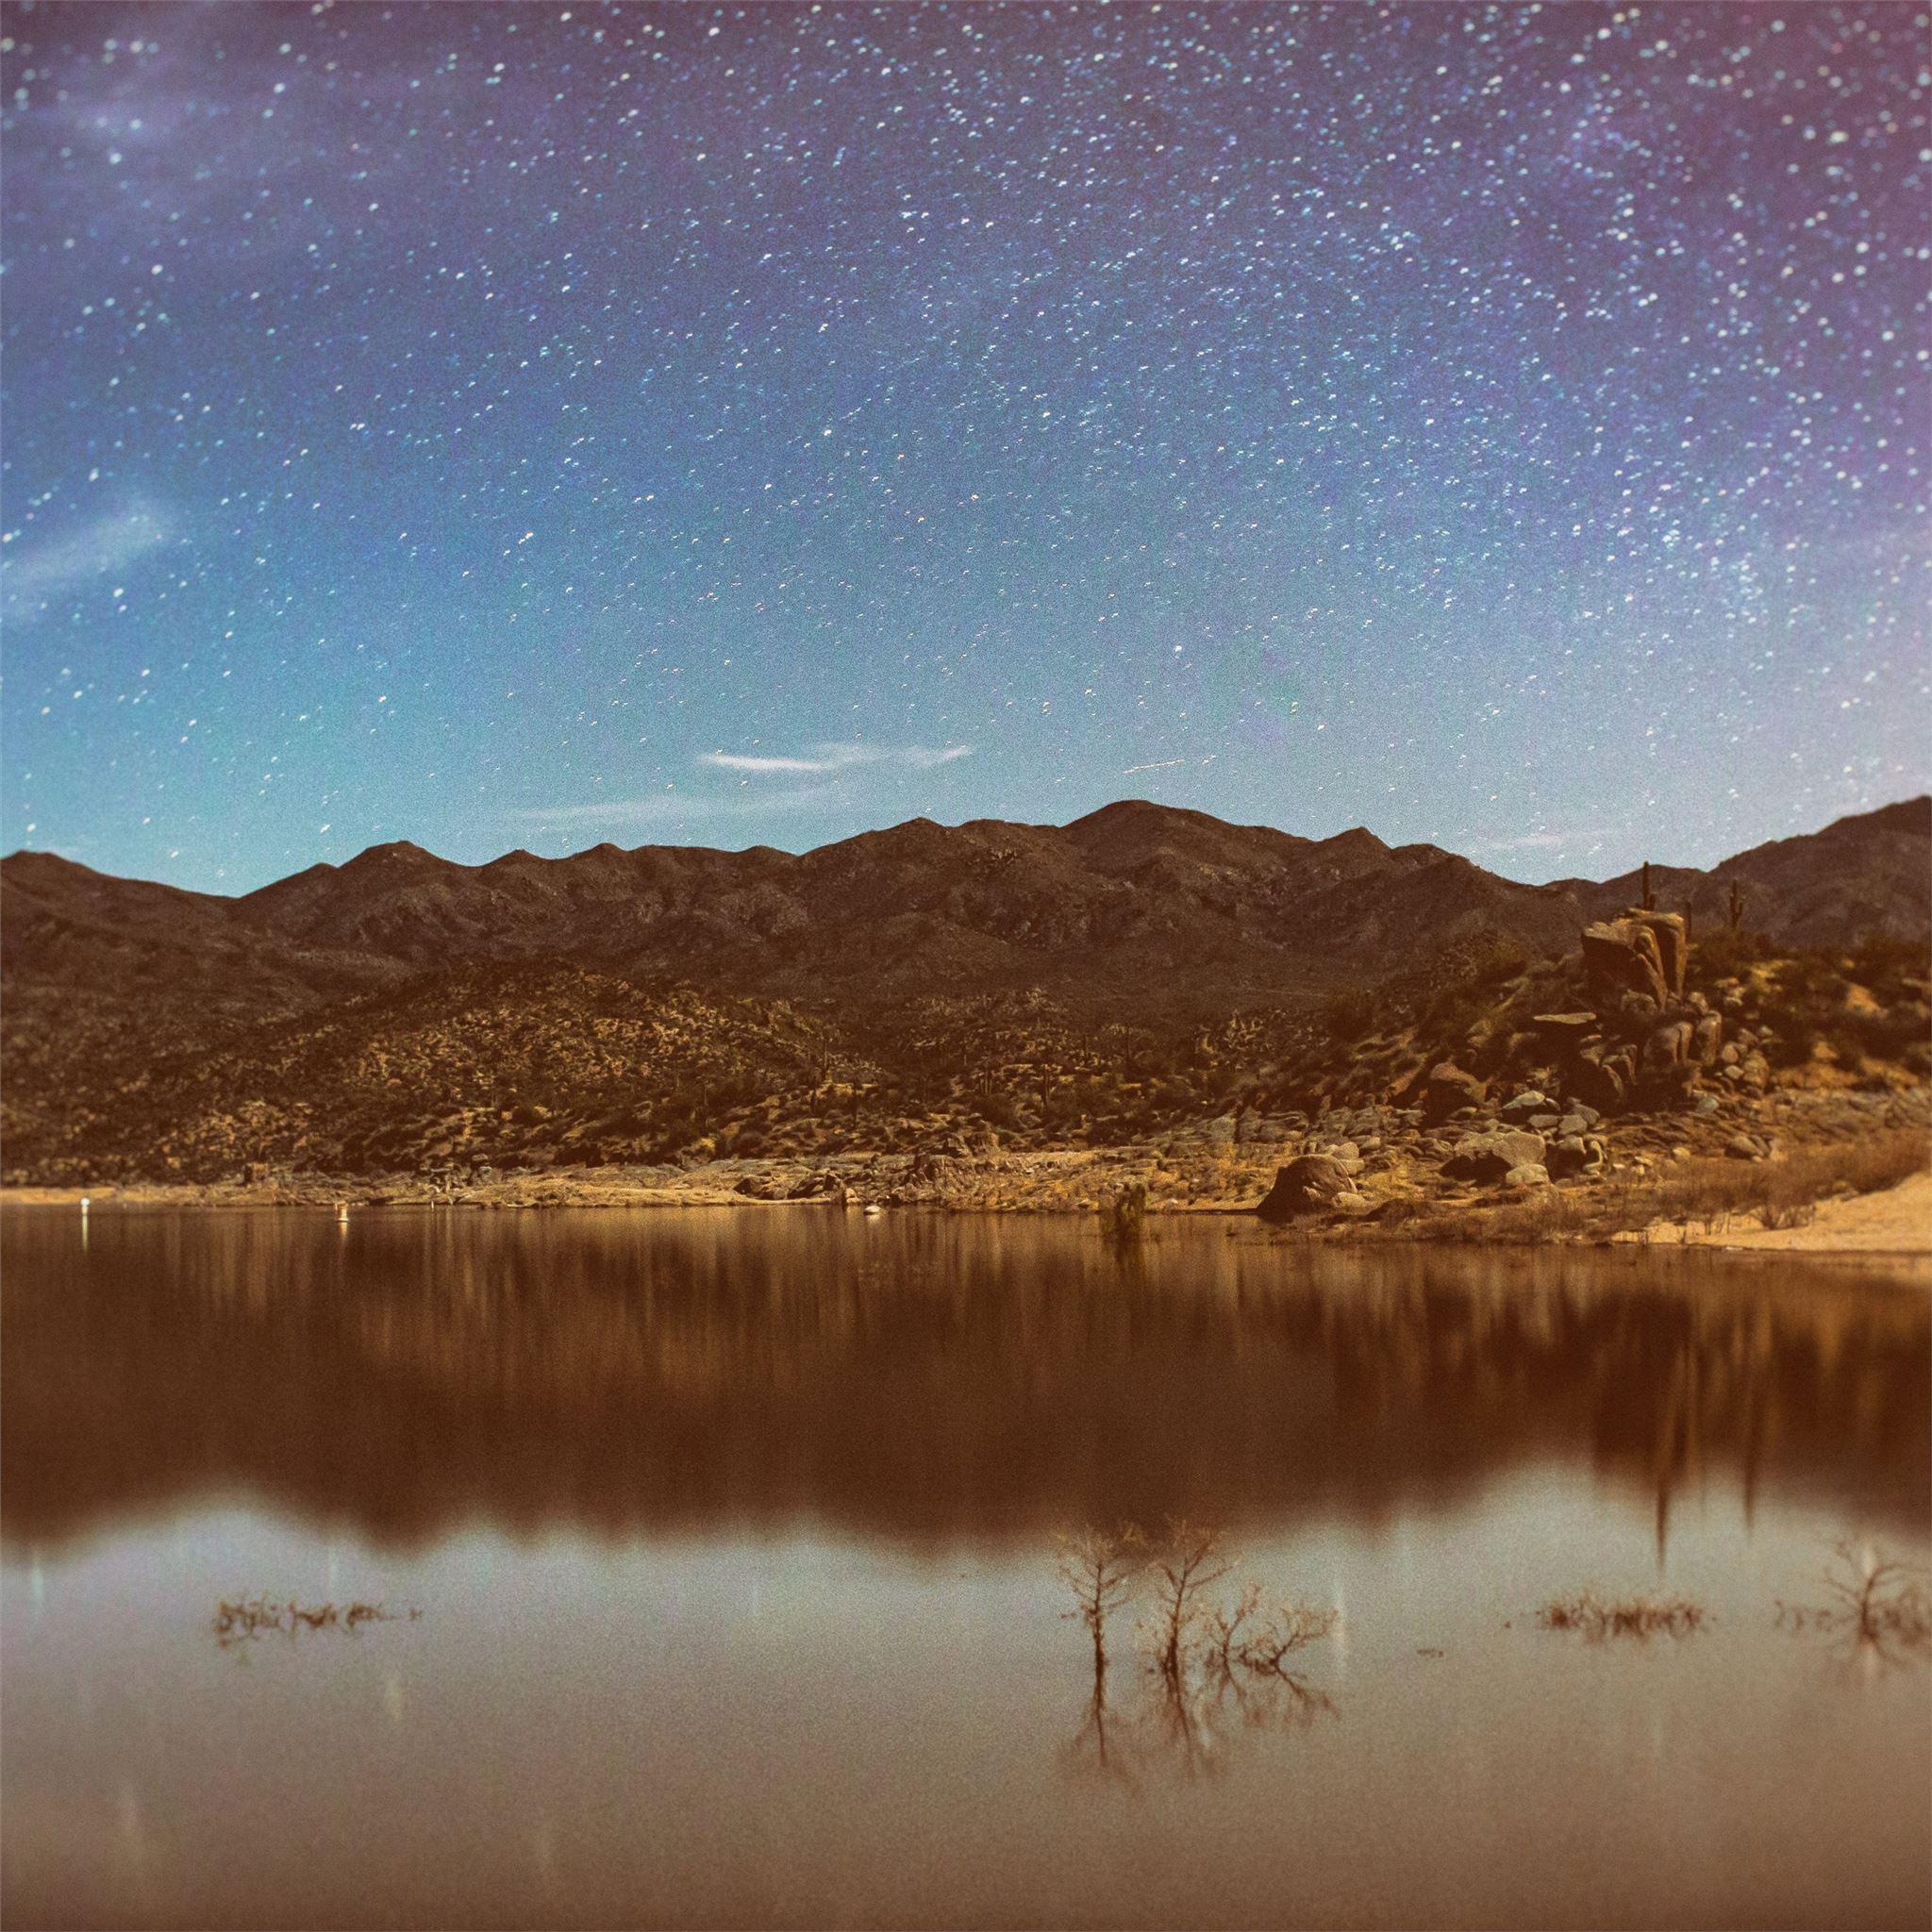 Sky Full Of Stars Nature Landscape 5k Ipad Wallpapers Free Download